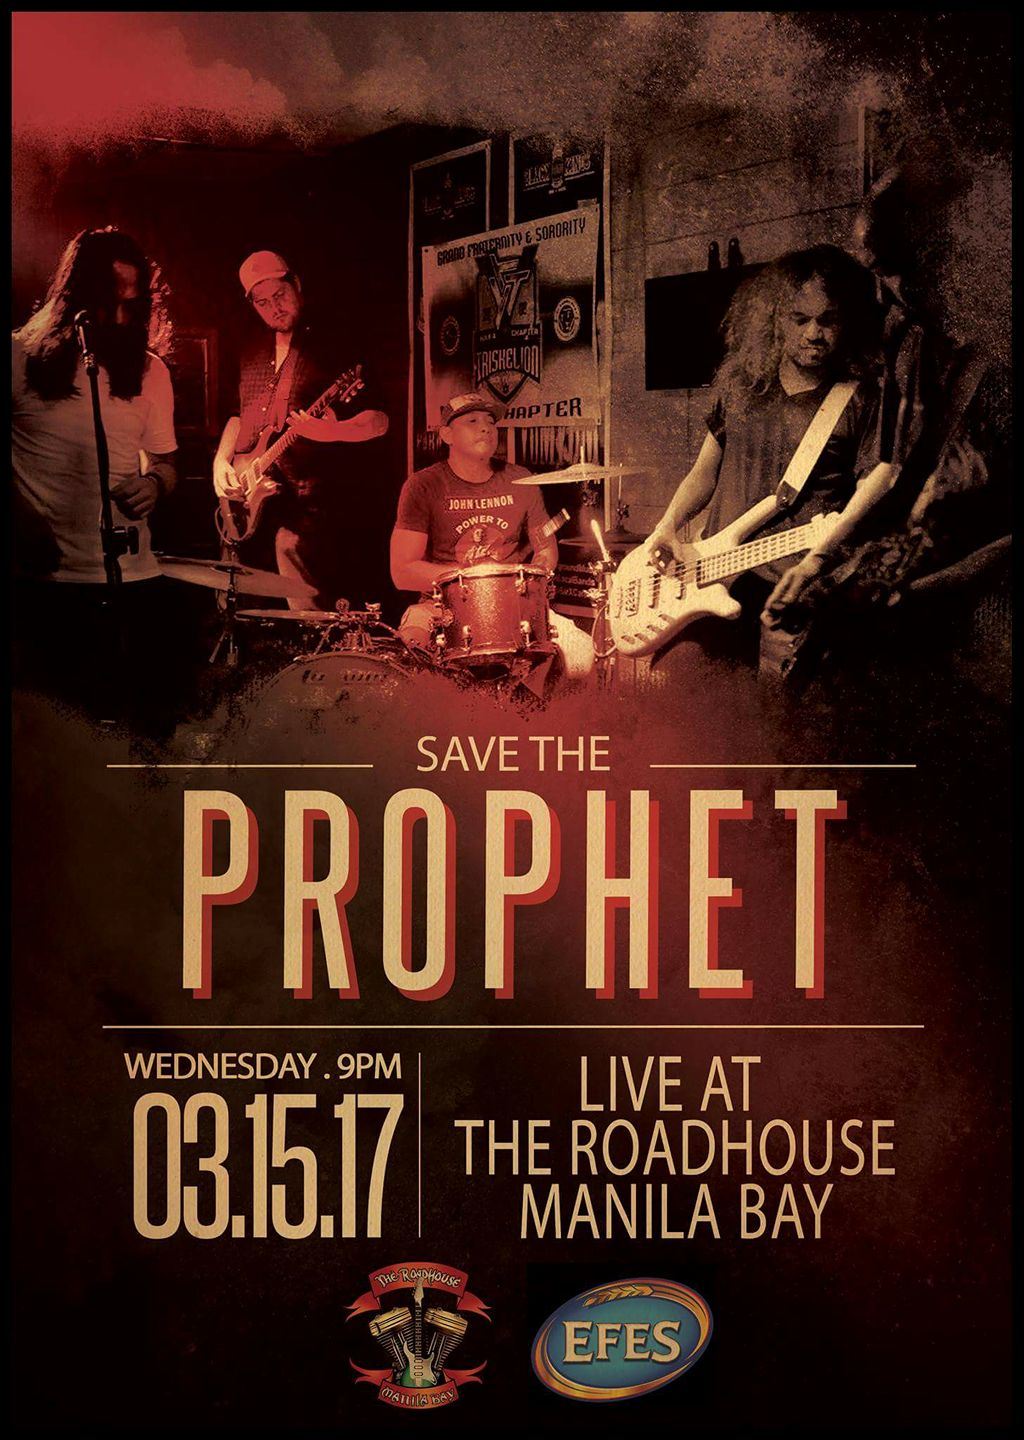 Save The Prophet #Grunge #STPatRoadhouse 03.15.17